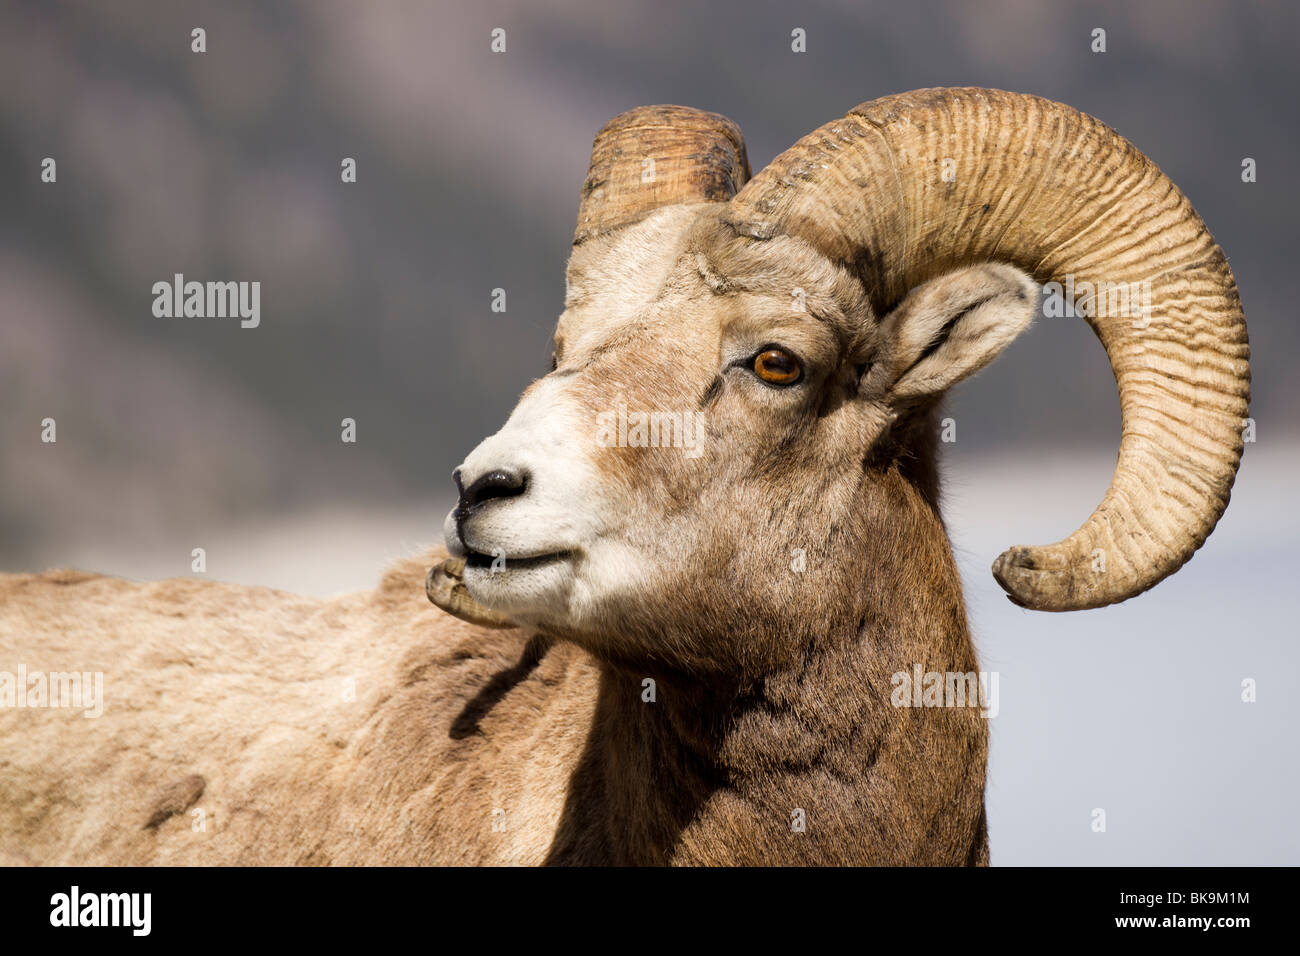 A  portrait of a young Rocky Mountain Sheep. Stock Photo